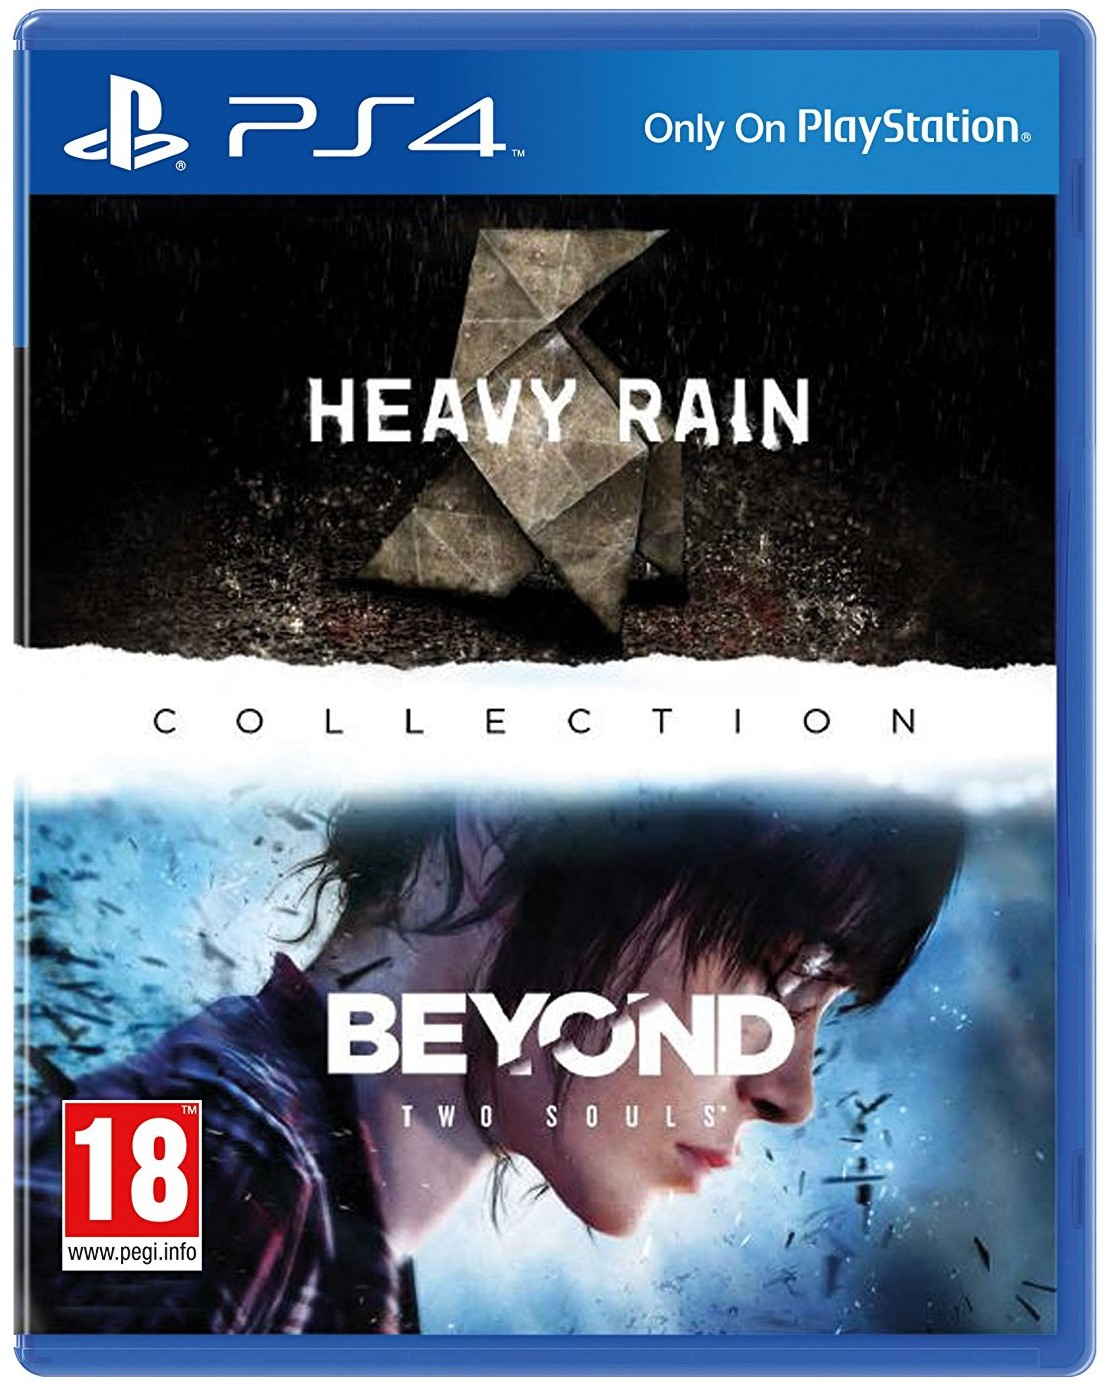 THE HEAVY RAIN & BEYOND: TWO SOULS COLLECTION - PS4